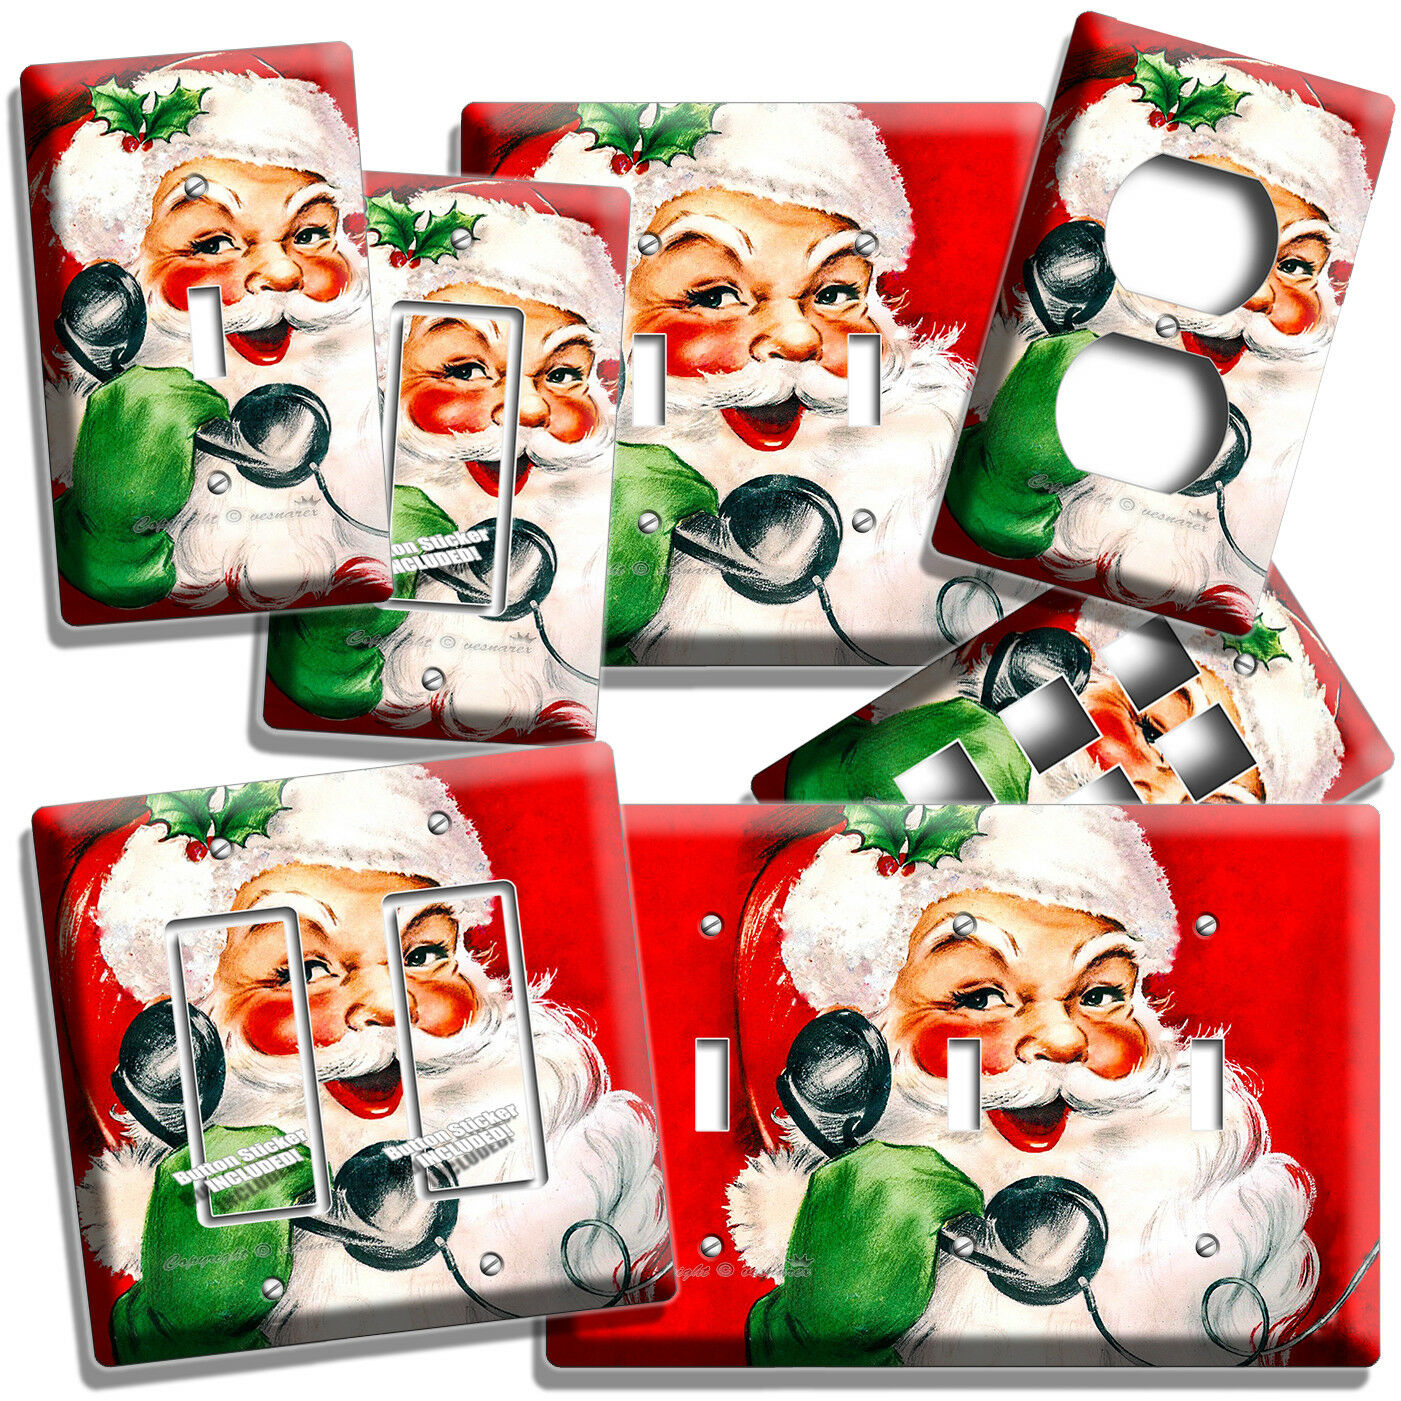 RETRO CHRISTMAS SANTA CLAUS ON A PHONE LIGHT SWITCH OUTLET W